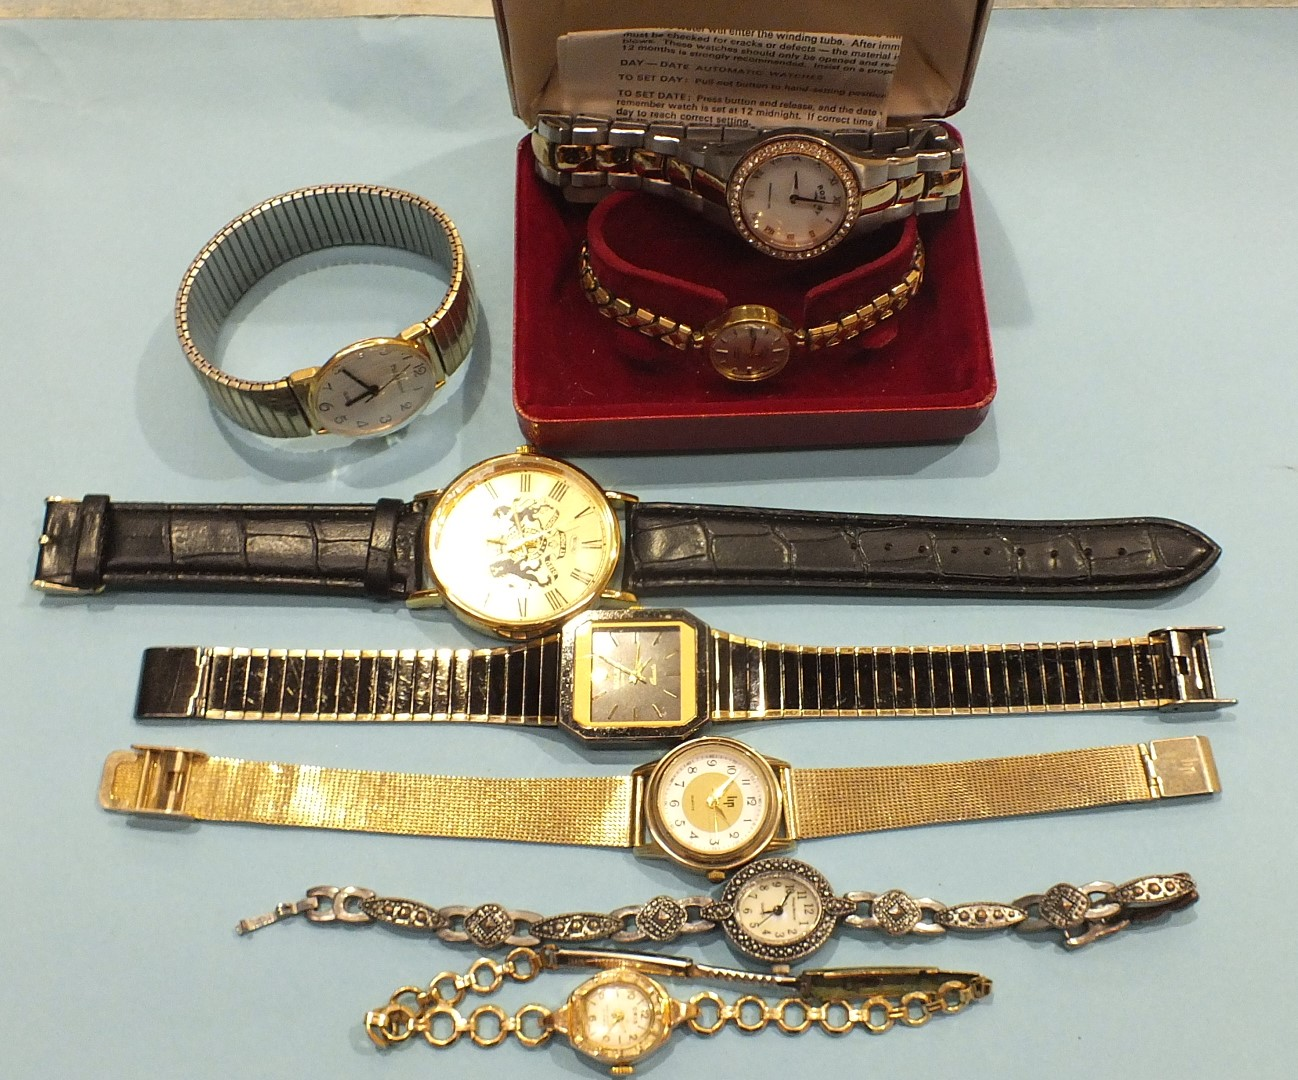 Lot 194 - A ladies 9ct-gold-cased Rotary wrist watch on plated expanding bracelet, boxed, a ladies Rotary